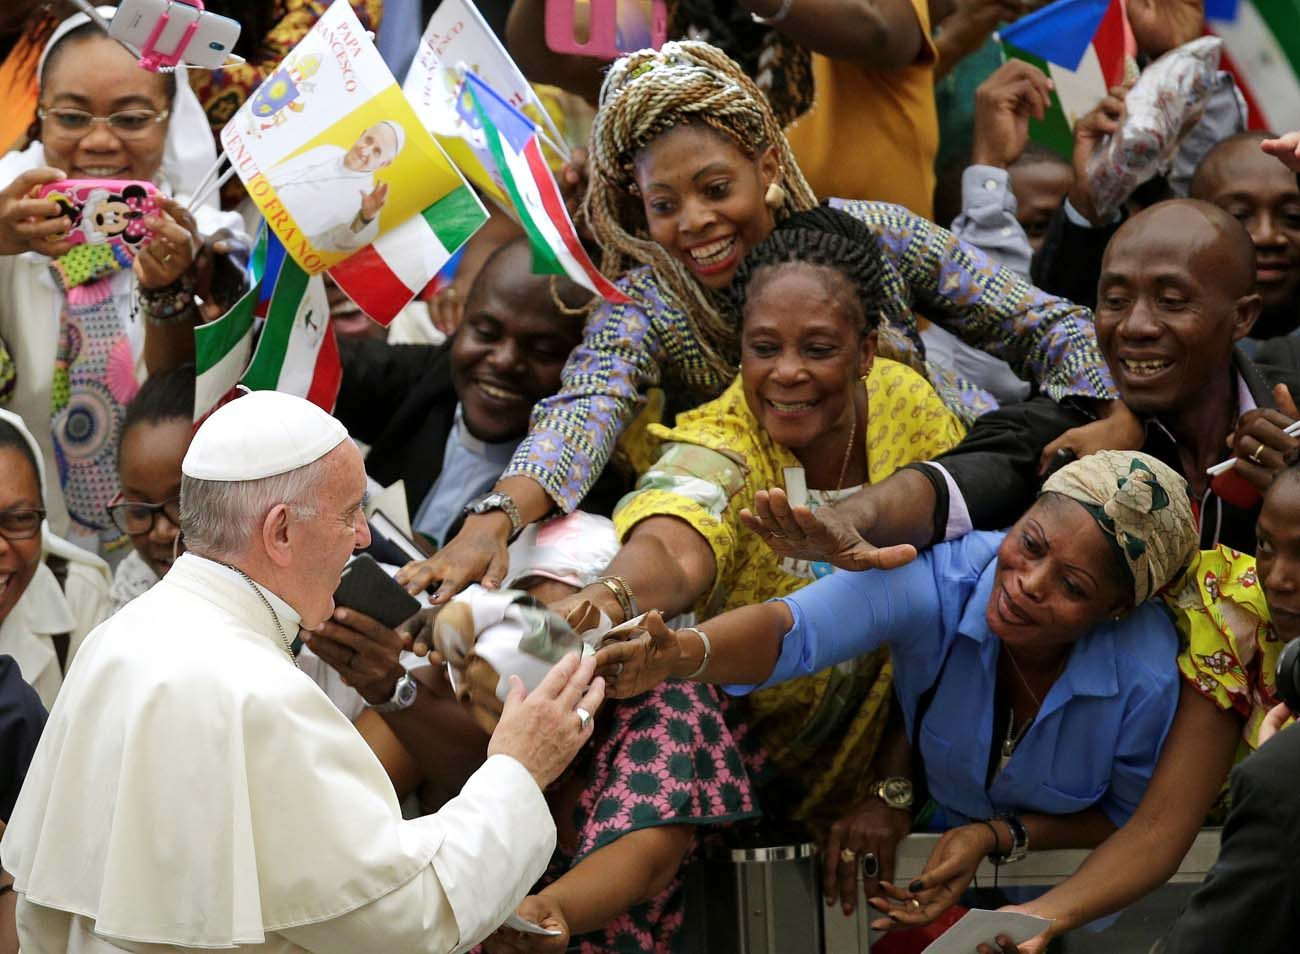 Pope Francis greets the faithful as he arrives to lead his general audience in Paul VI hall at the Vatican Aug. 10. (CNS photo/Max Rossi, Reuters)